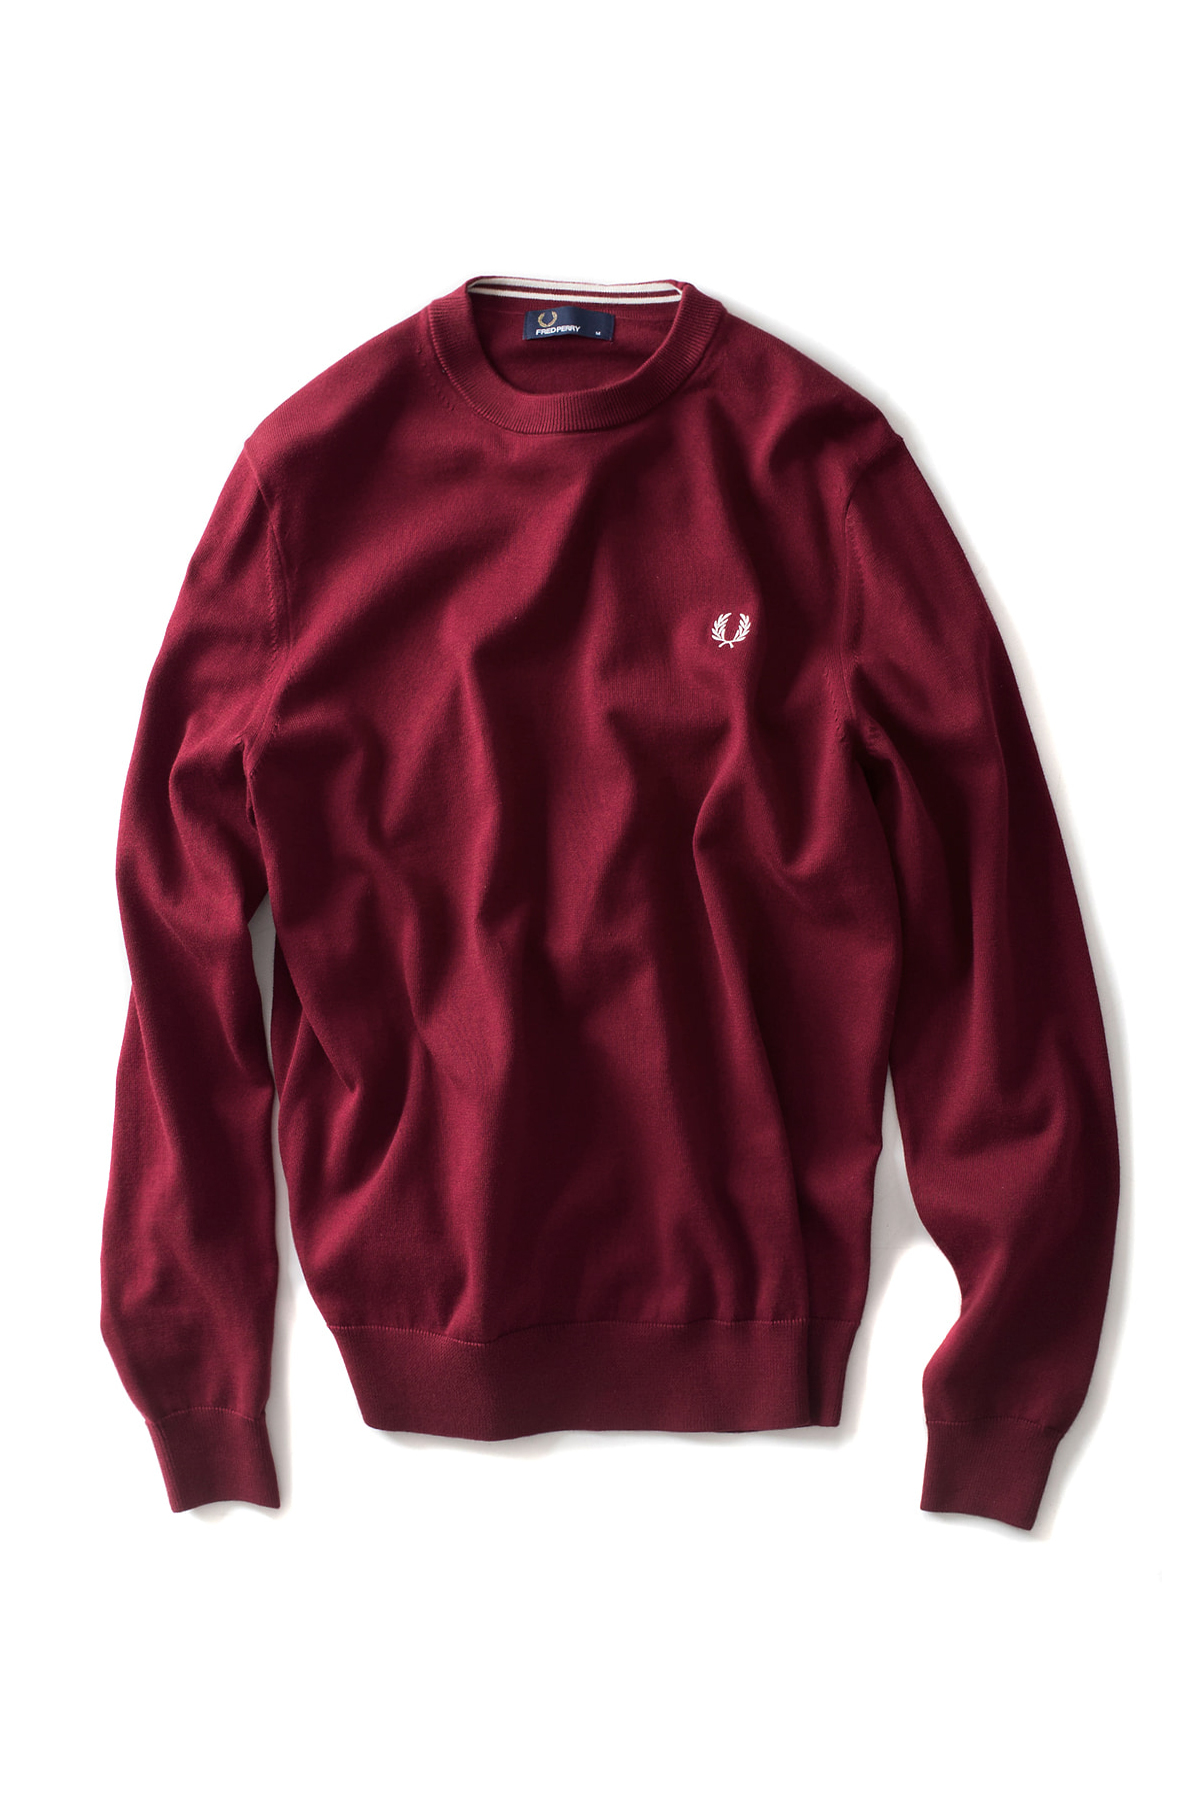 FRED PERRY : Classic Crew Neck Sweater (Dark Red)